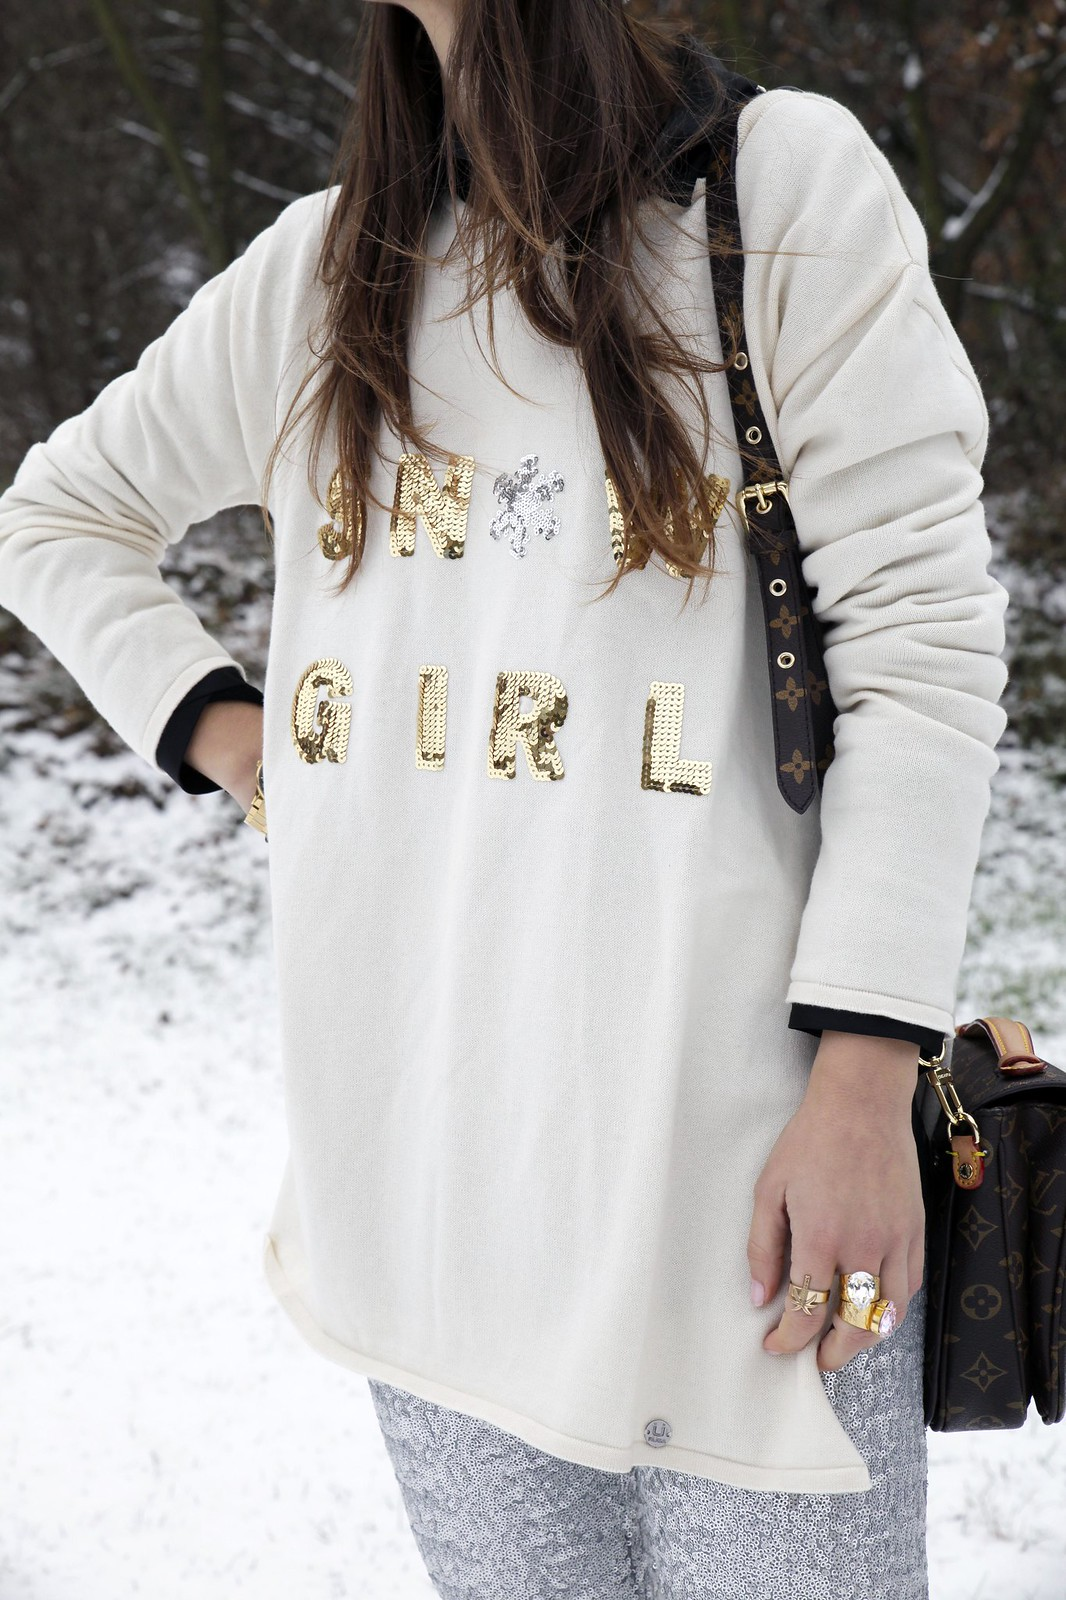 09_SNOW_GIRL_OUTFIT_THEGUESTGIRL_LAURA_SANTOLARIA_FASHION_BLOGGER_RUGACOLLECTION_MOUBOOTS_WINTER